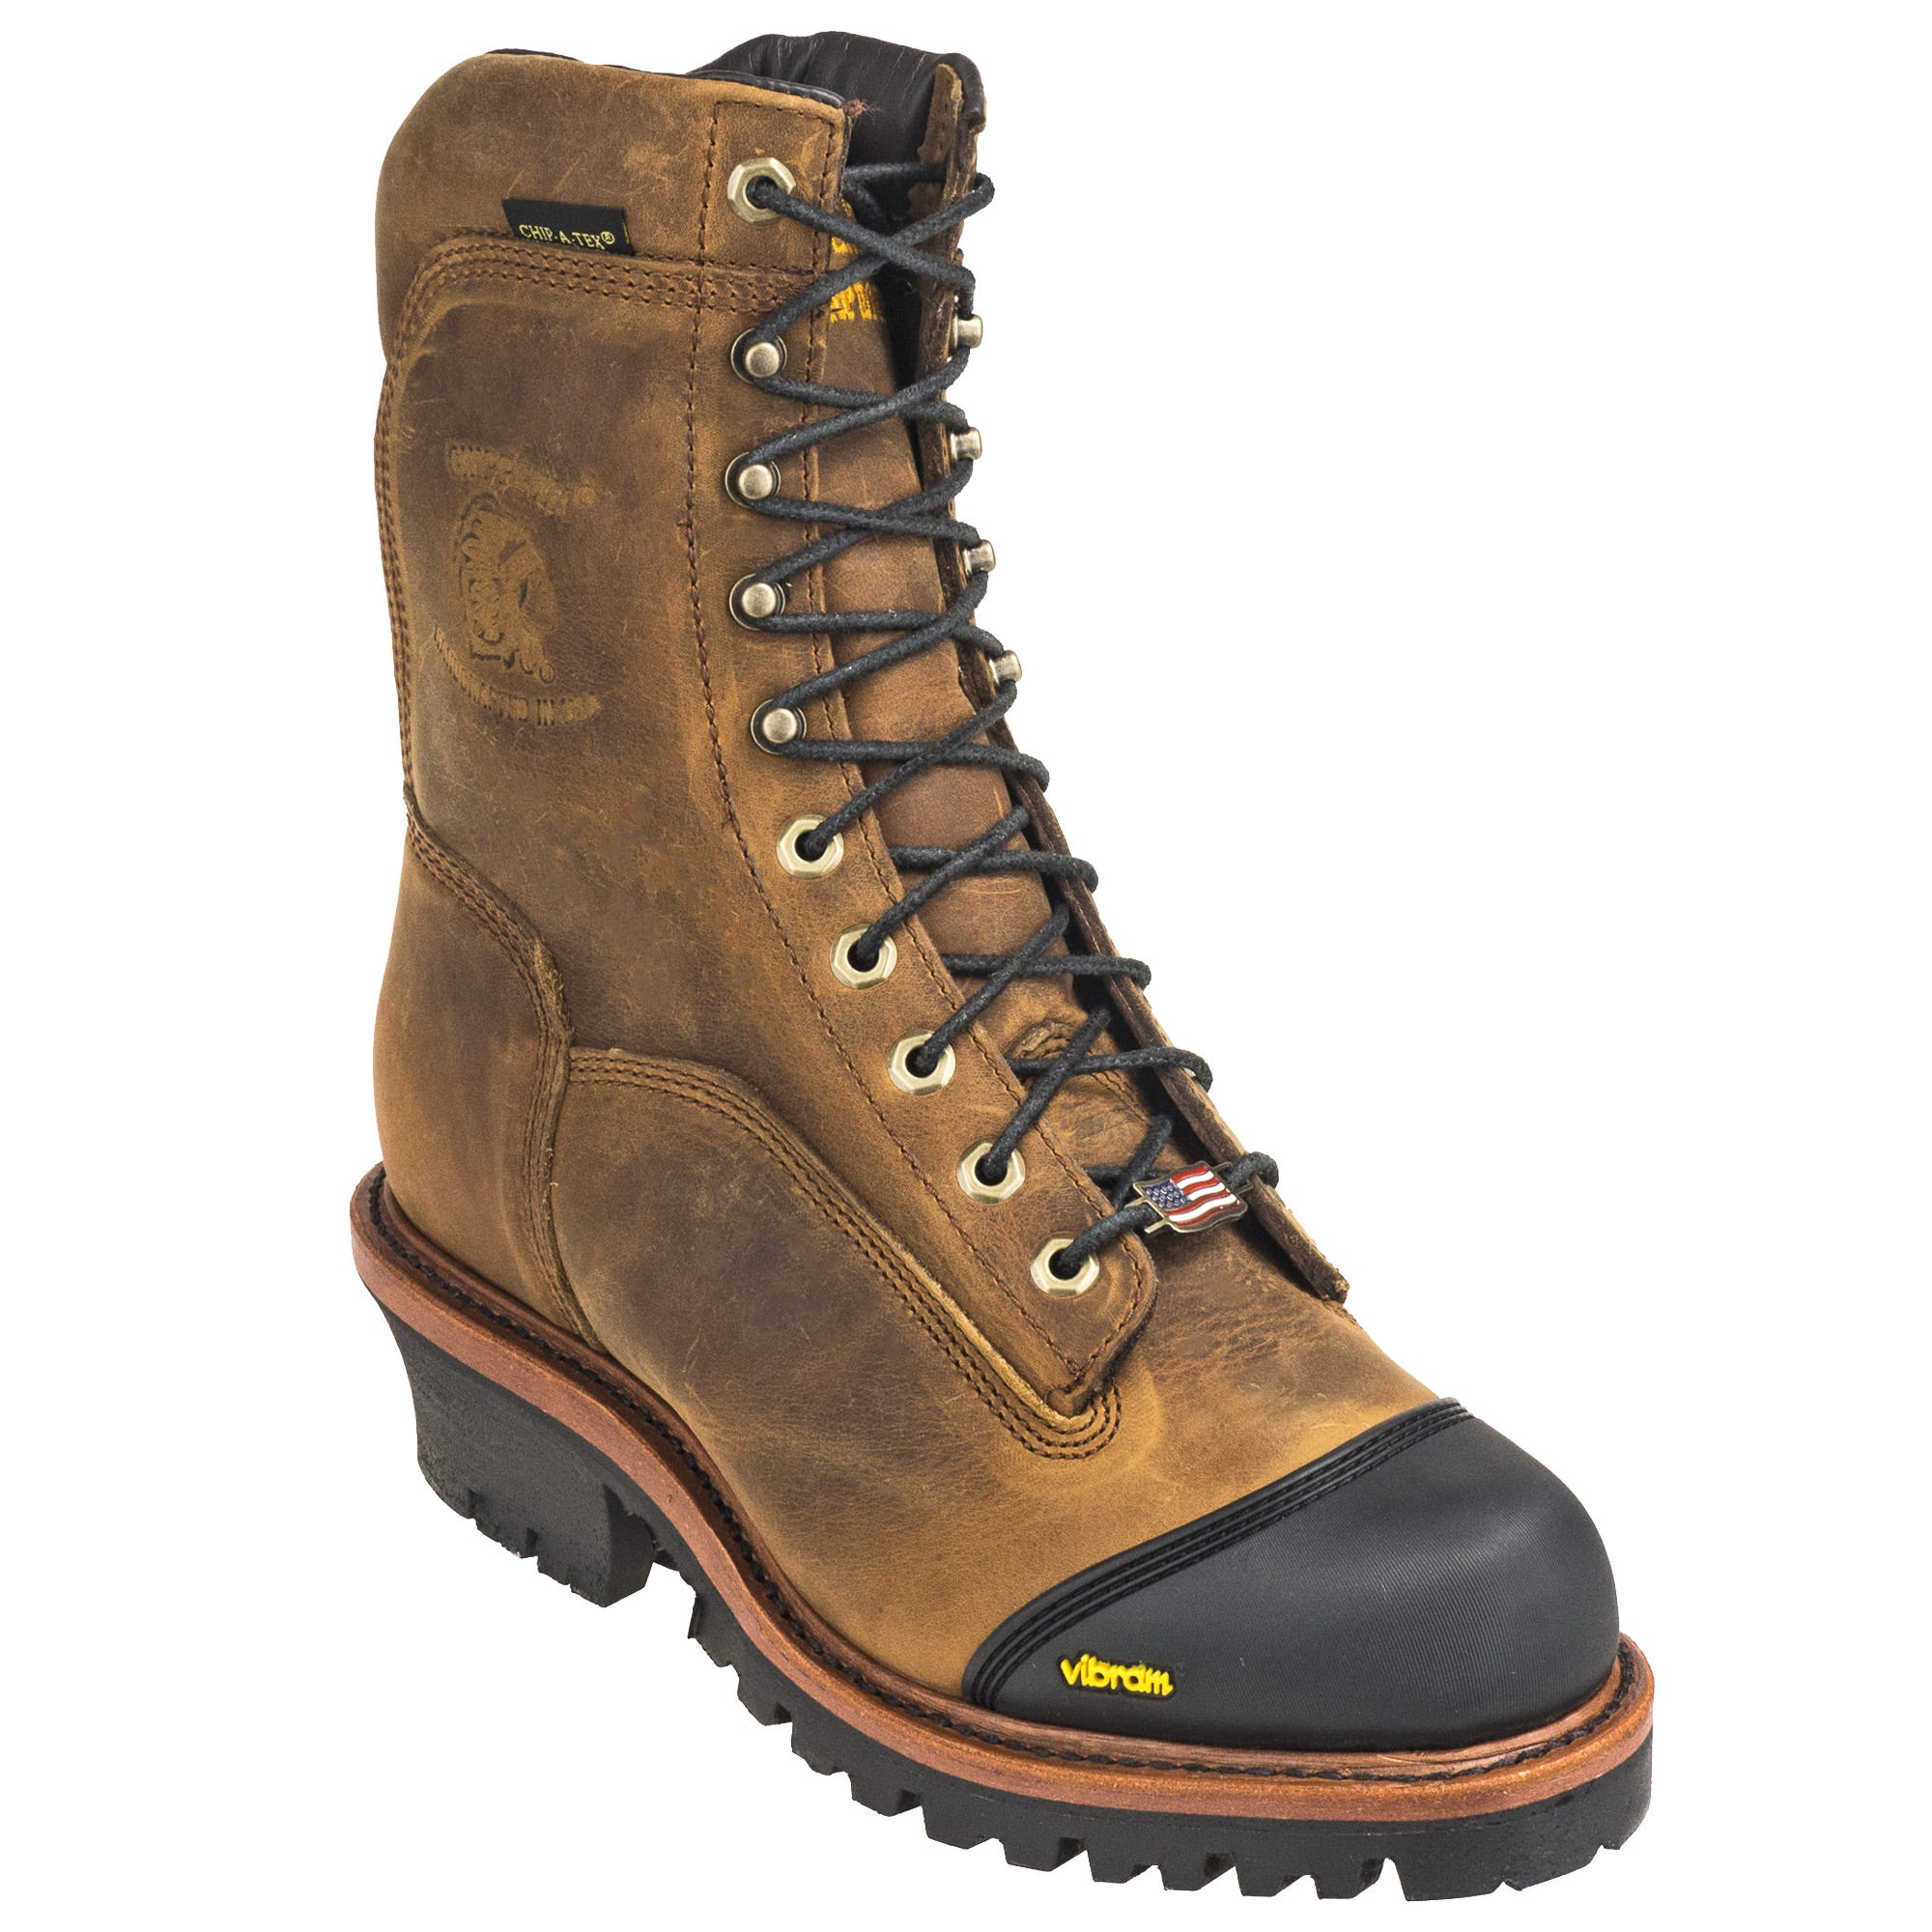 70c6502af30 Chippewa Boots: Men's Insulated 9-Inch Brown 25387 Super Series ...